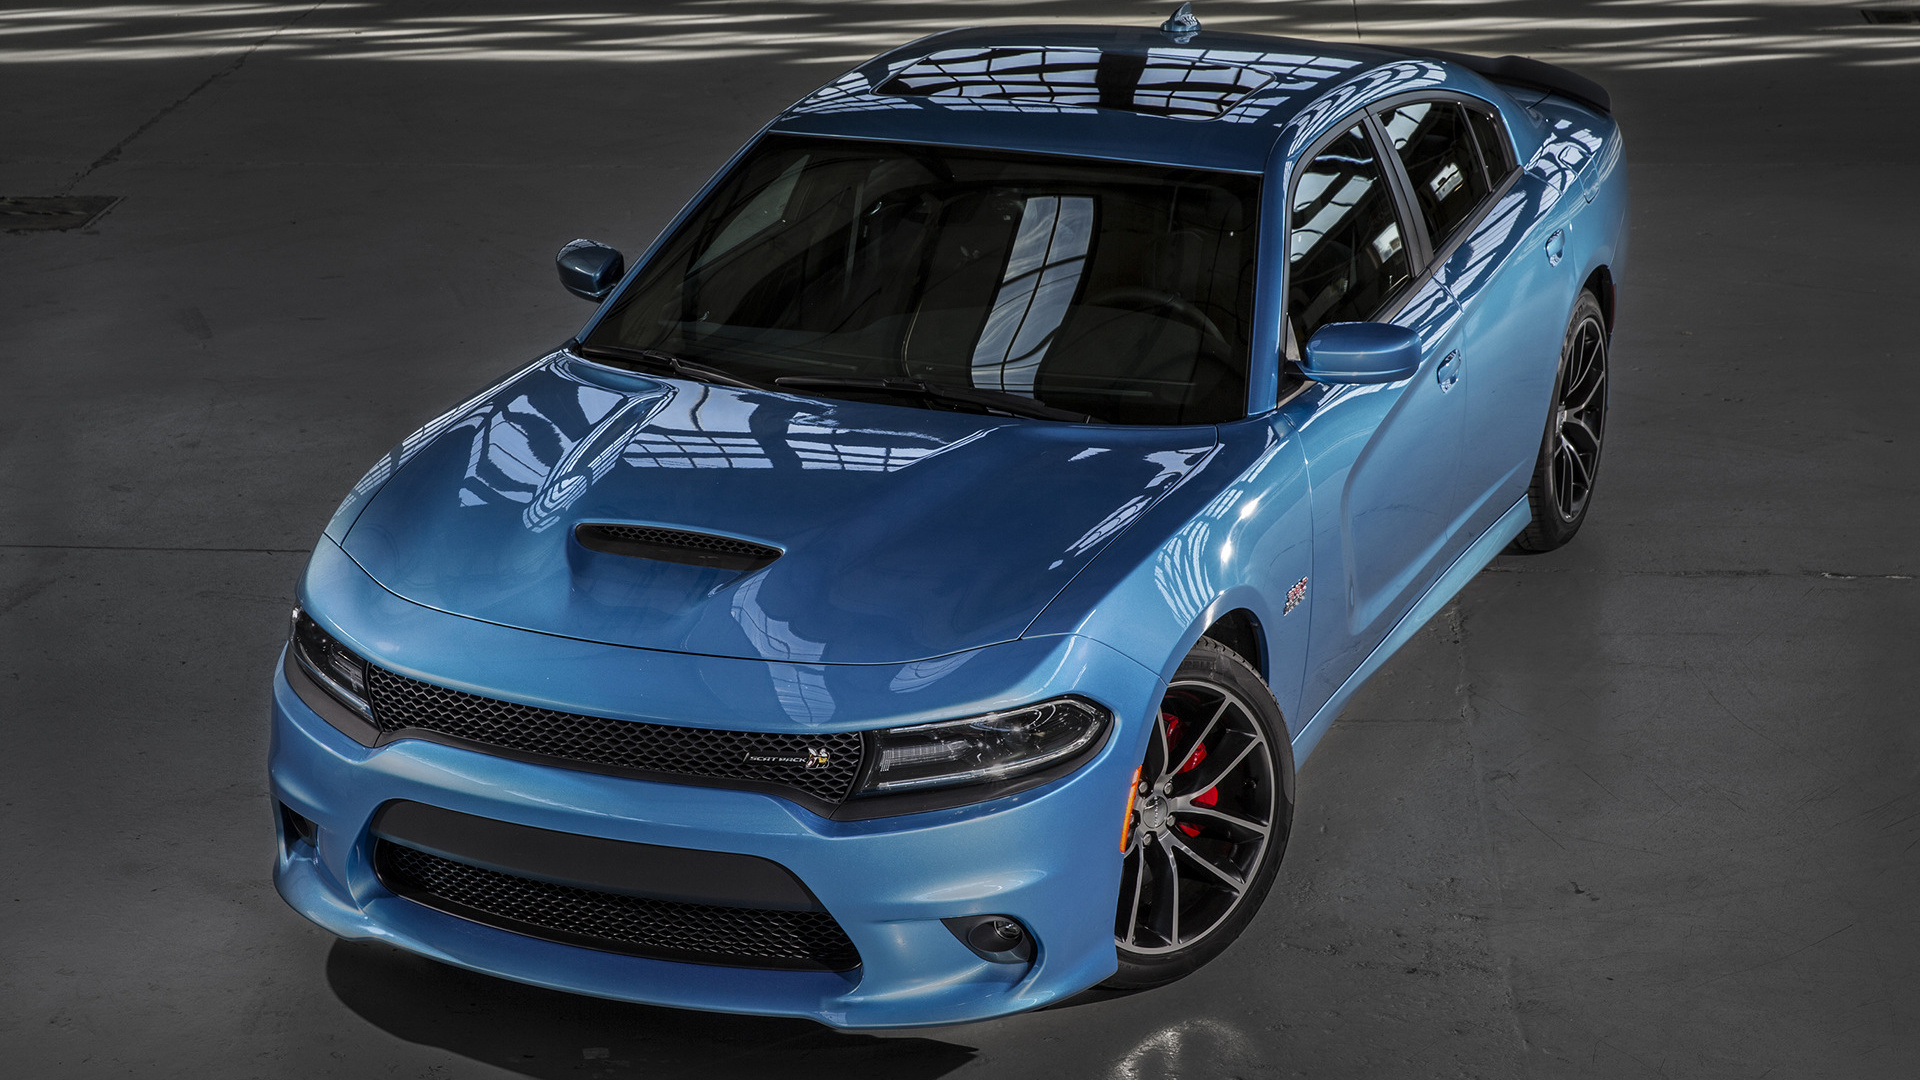 Wallpapers Hd Lamborghini 2015 Dodge Charger R T Scat Pack Wallpapers And Hd